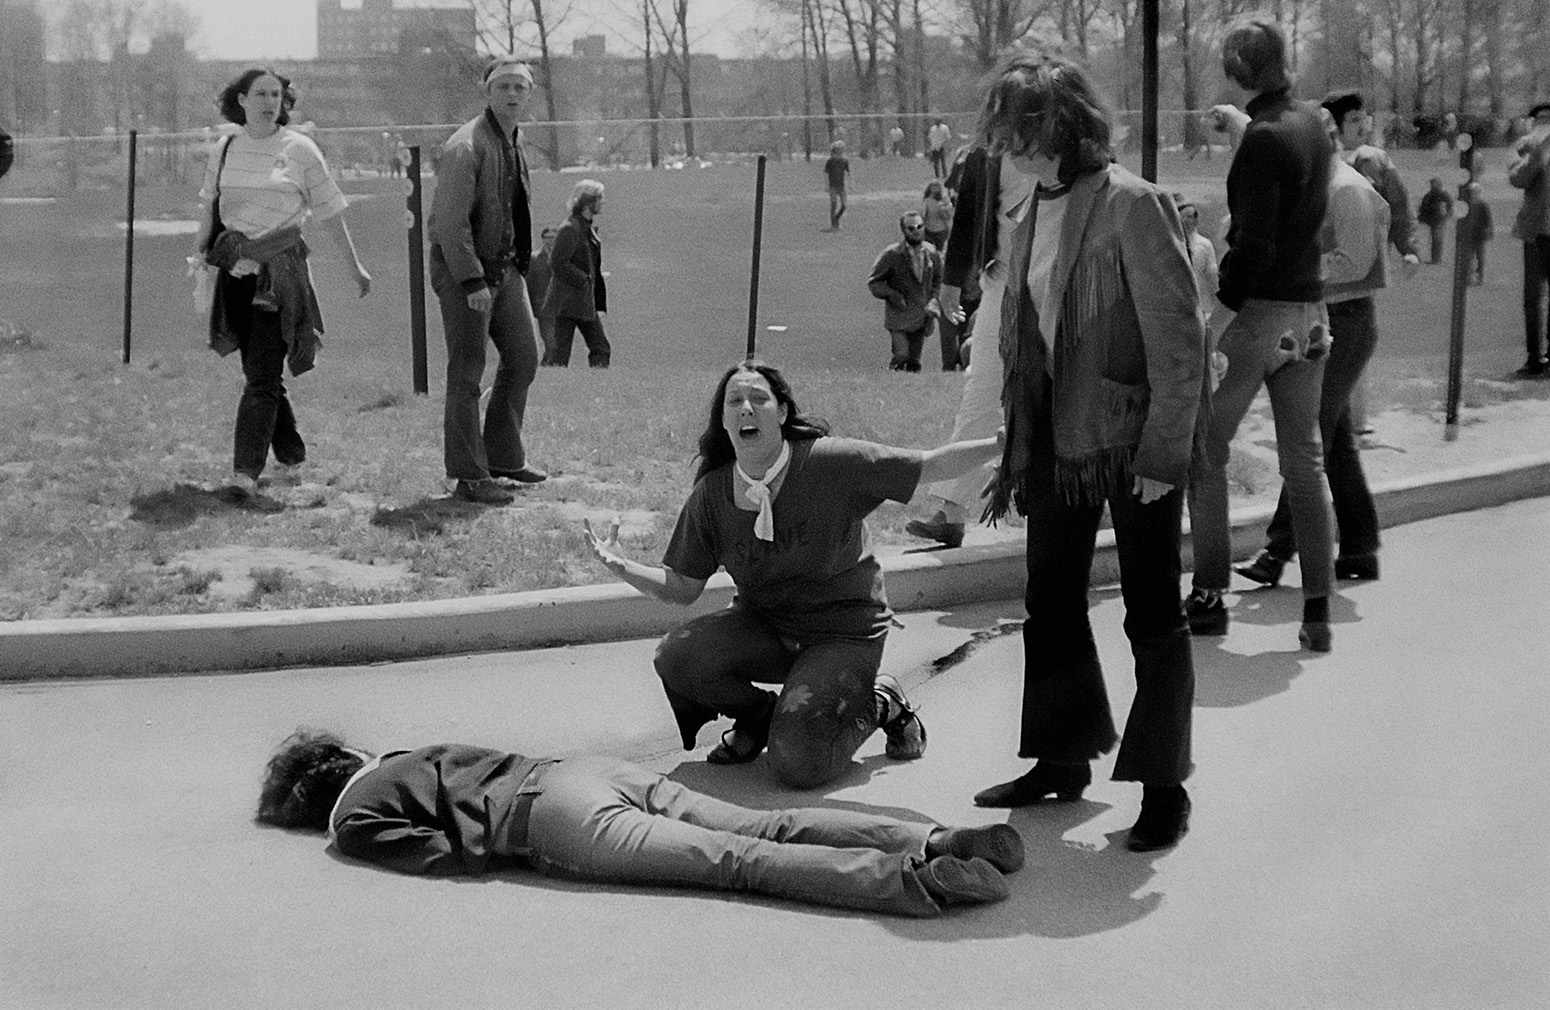 Mary Ann Vecchio cries out over the body of Jeffrey Miller at Kent State University on May 4, 1970. ©1970 John Paul Filo. All Rights reserved.